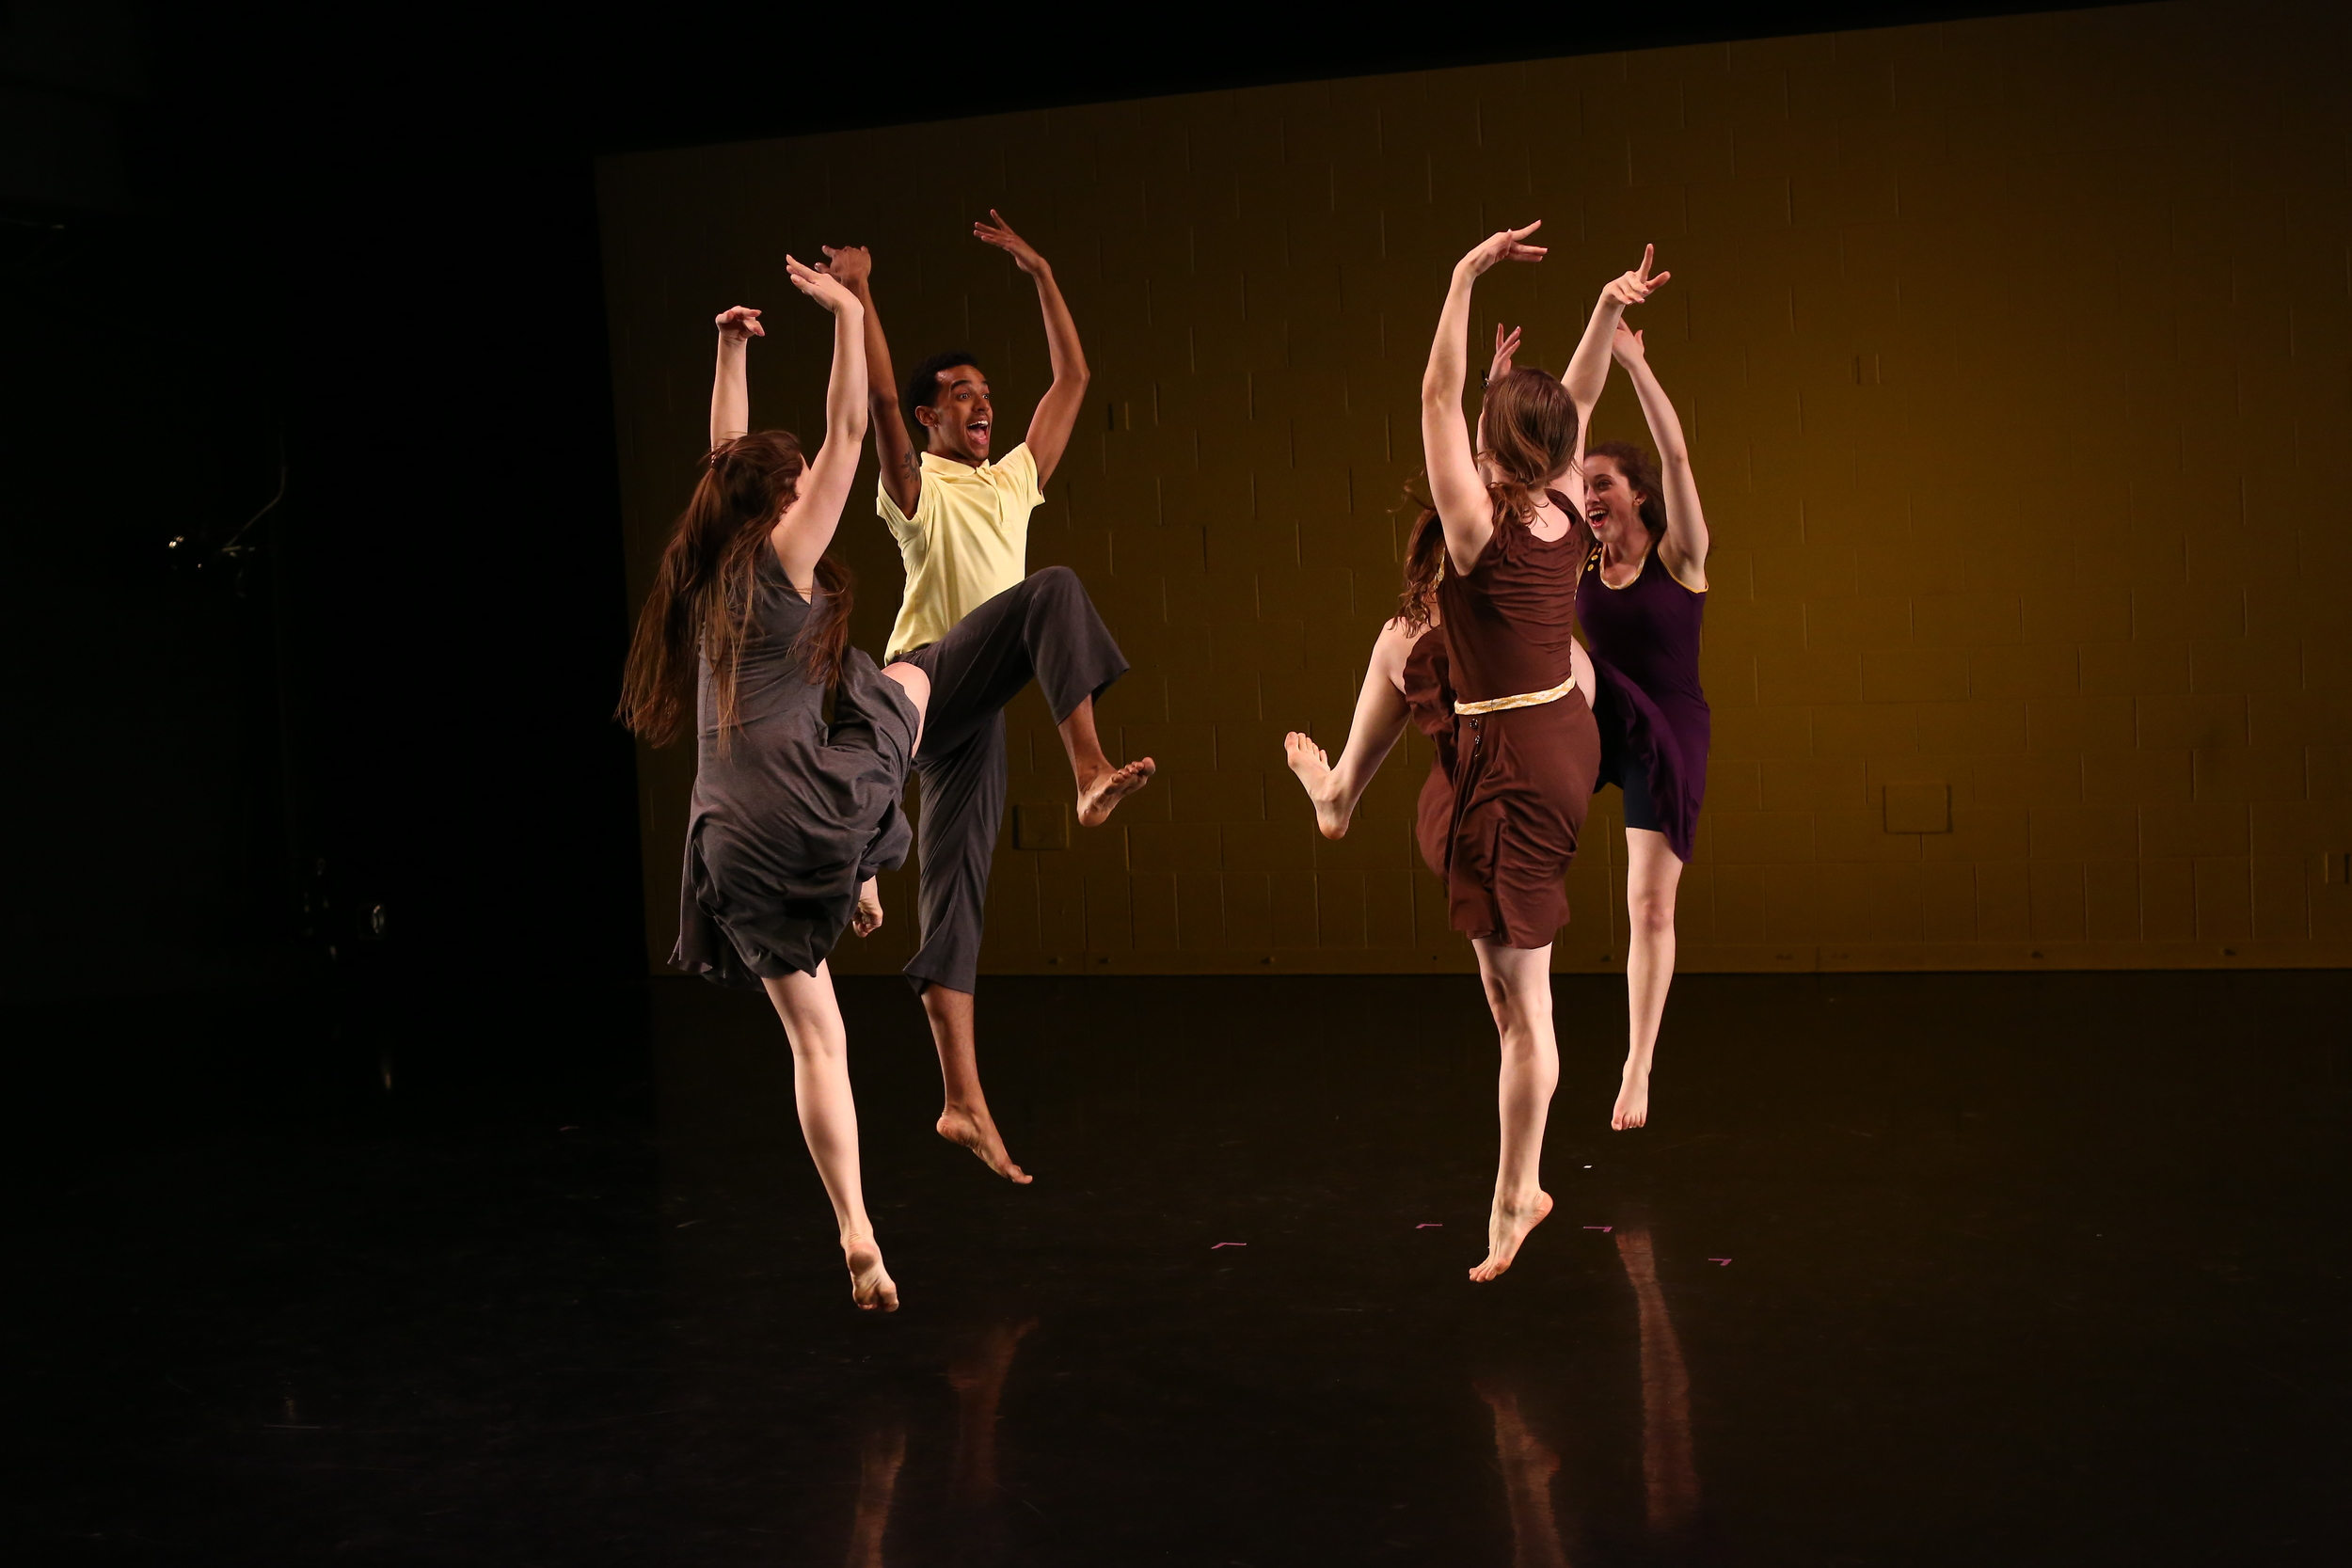 """Crossing Rivers,"" choreographed by Mor Mendel, grad '14,  features undergraduate dancers Julia Beros '17, Jonathan Gonzalez grad '14, EmmaGrace Skove-Epes grad '15, and Zoe Ulrich '16. Photo courtesy Paula Court."